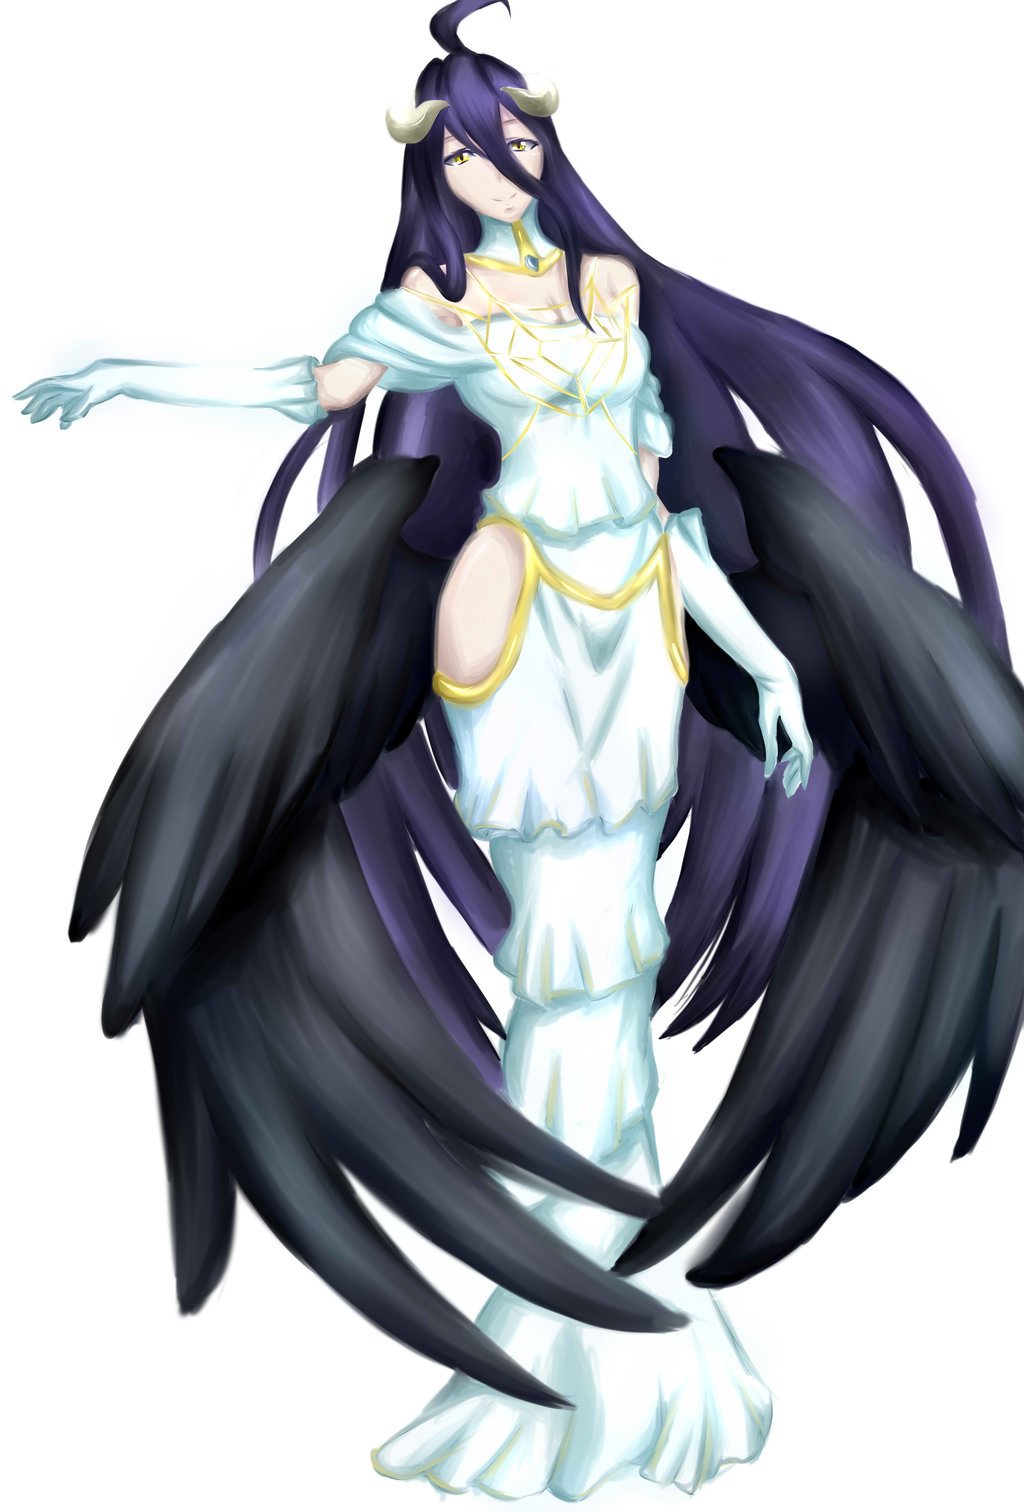 Free Download Albedo Overlord Part 2 Link On The